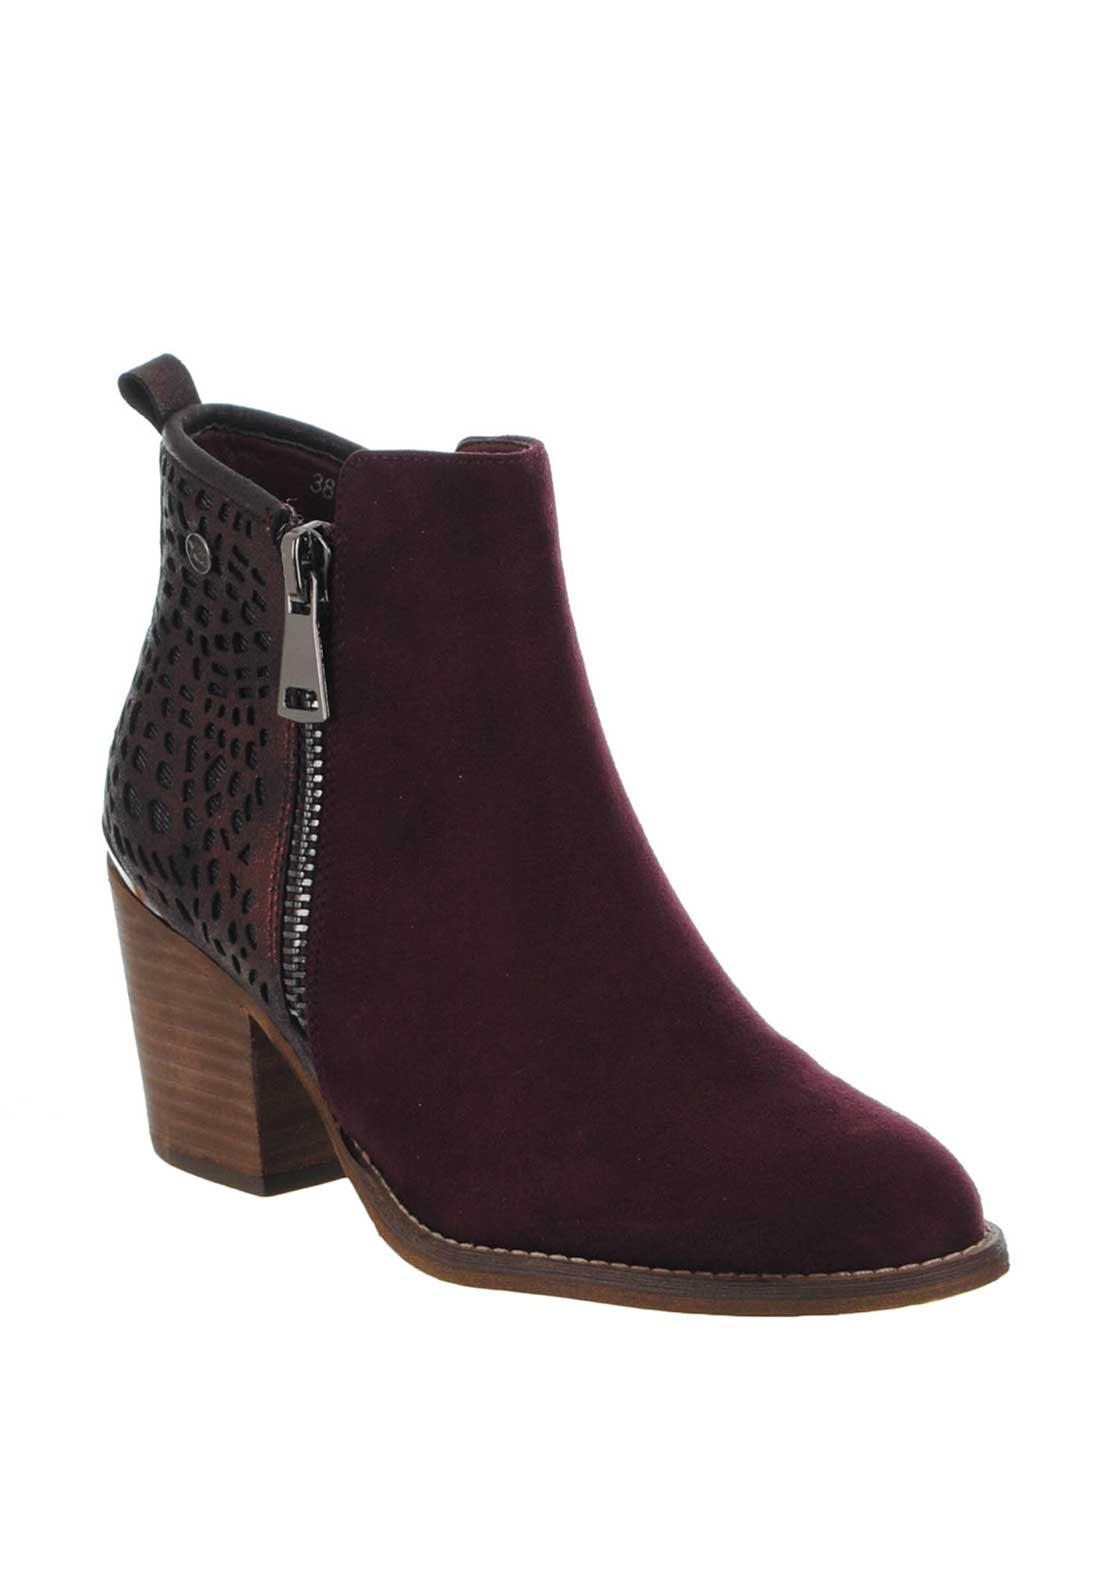 Xti Womens Laser Cut Block Heel Boots, Wine